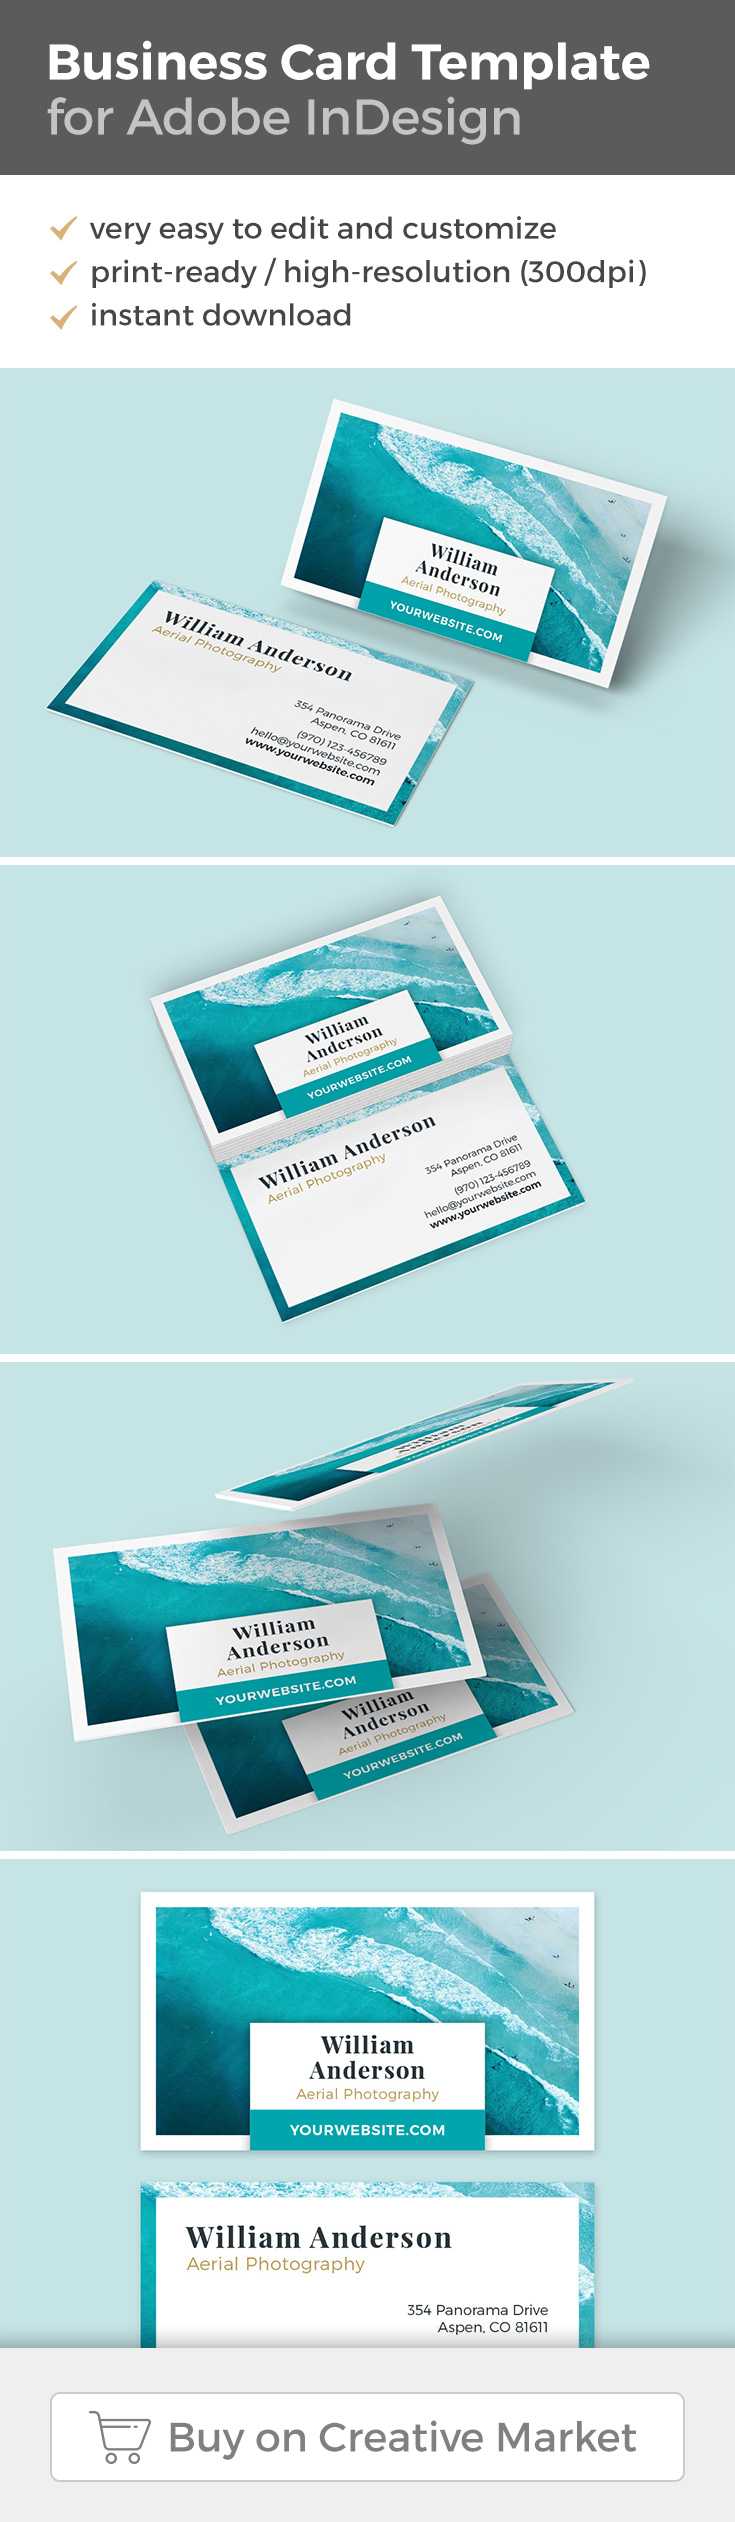 Beautiful Business Card Template for Adobe InDesign with an ocean ...